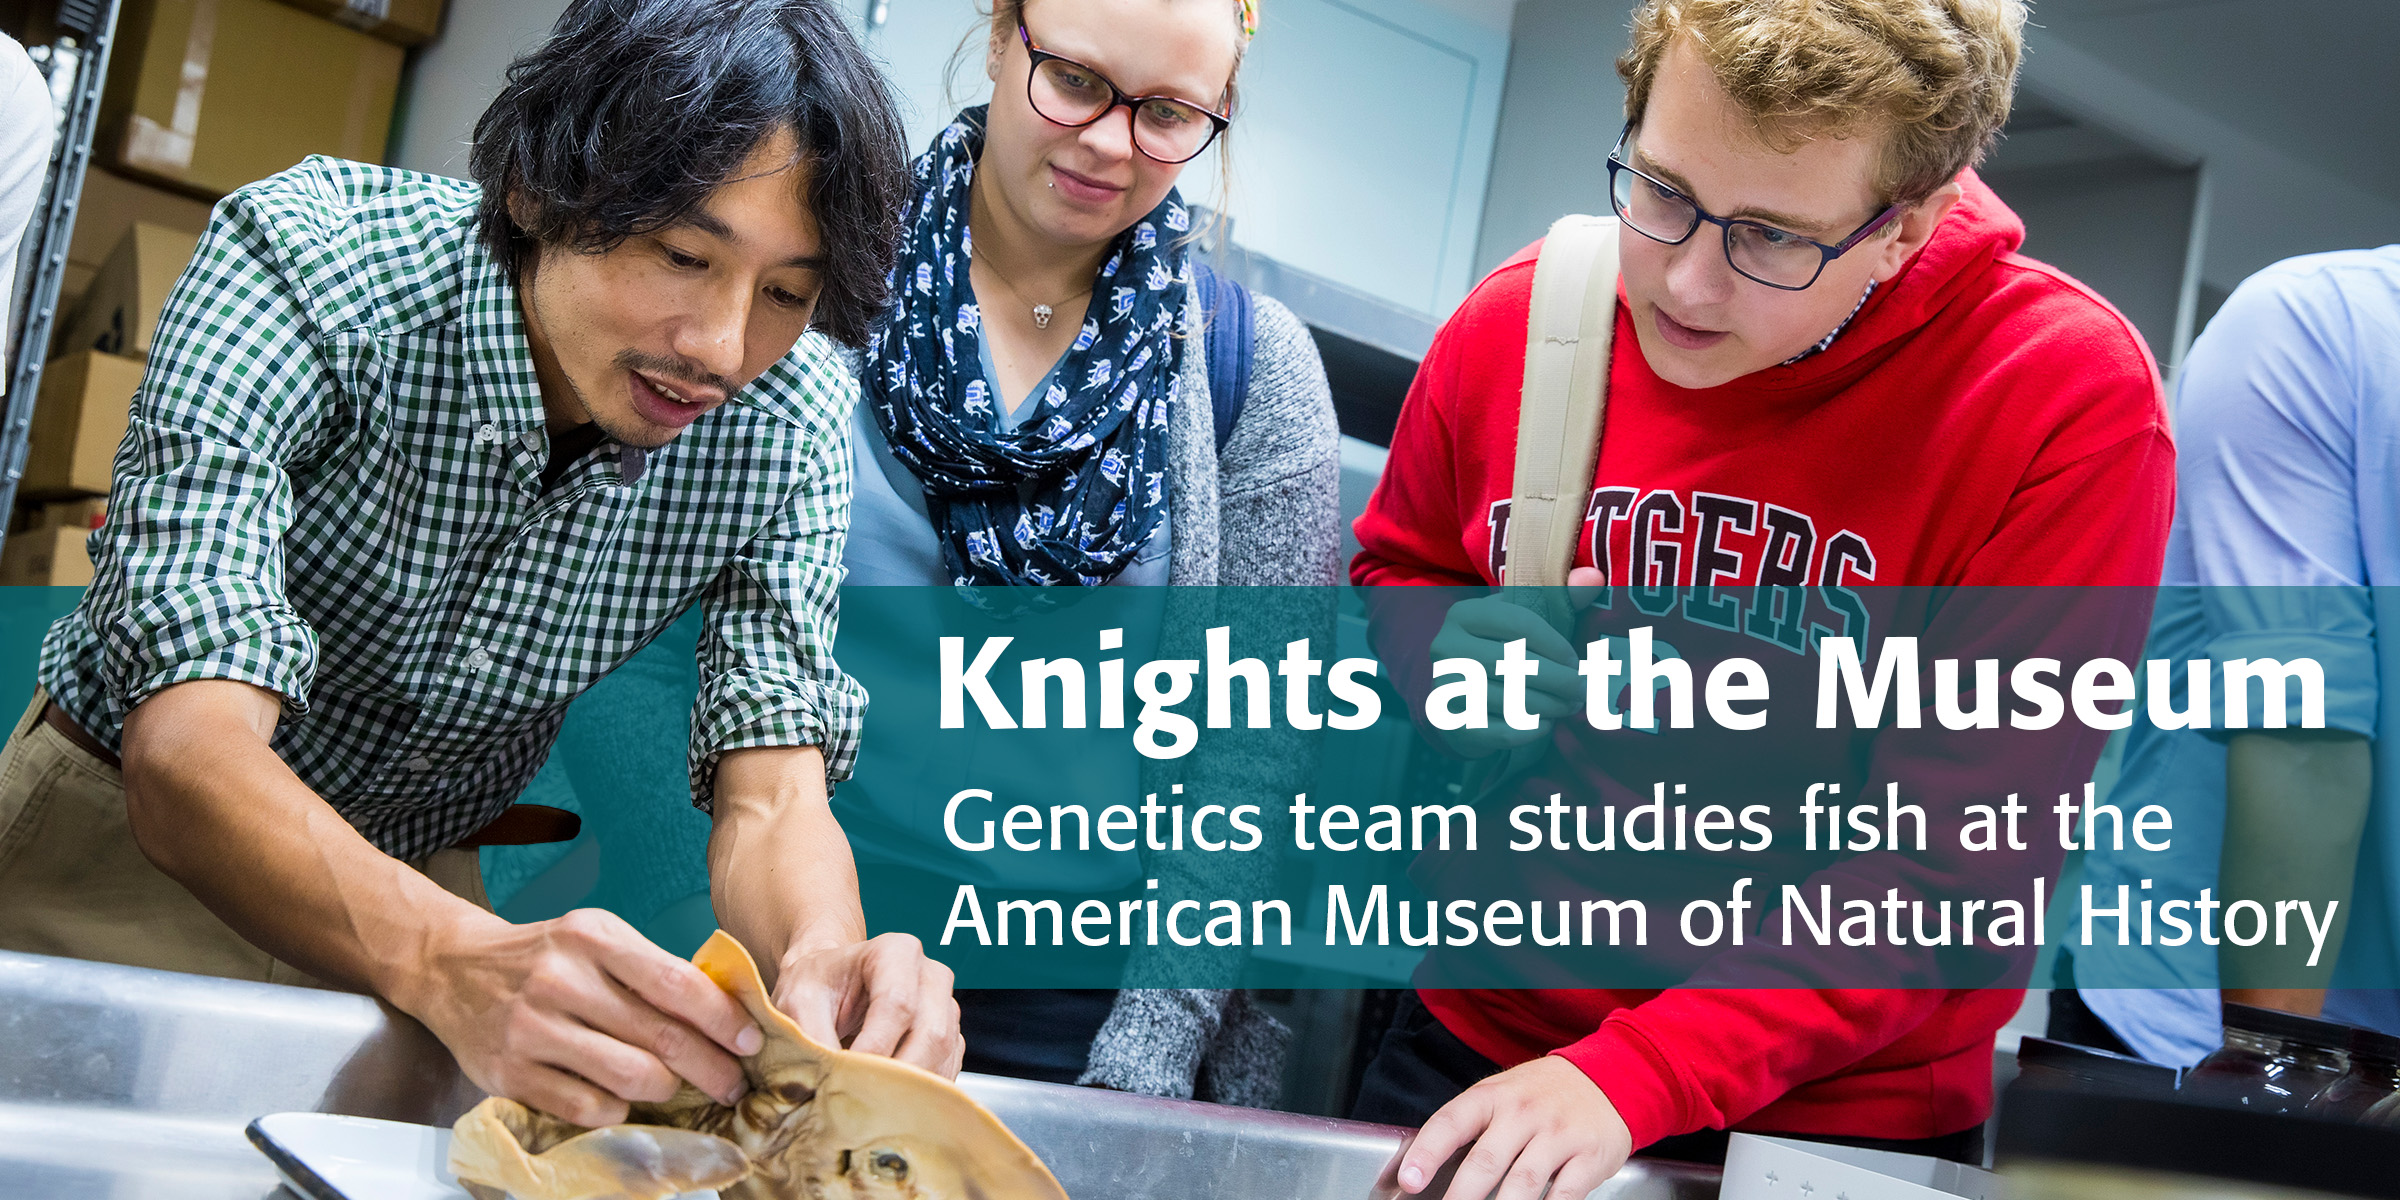 Knights at the Museum: Genetics team studies fish at the American Museum of Natural History